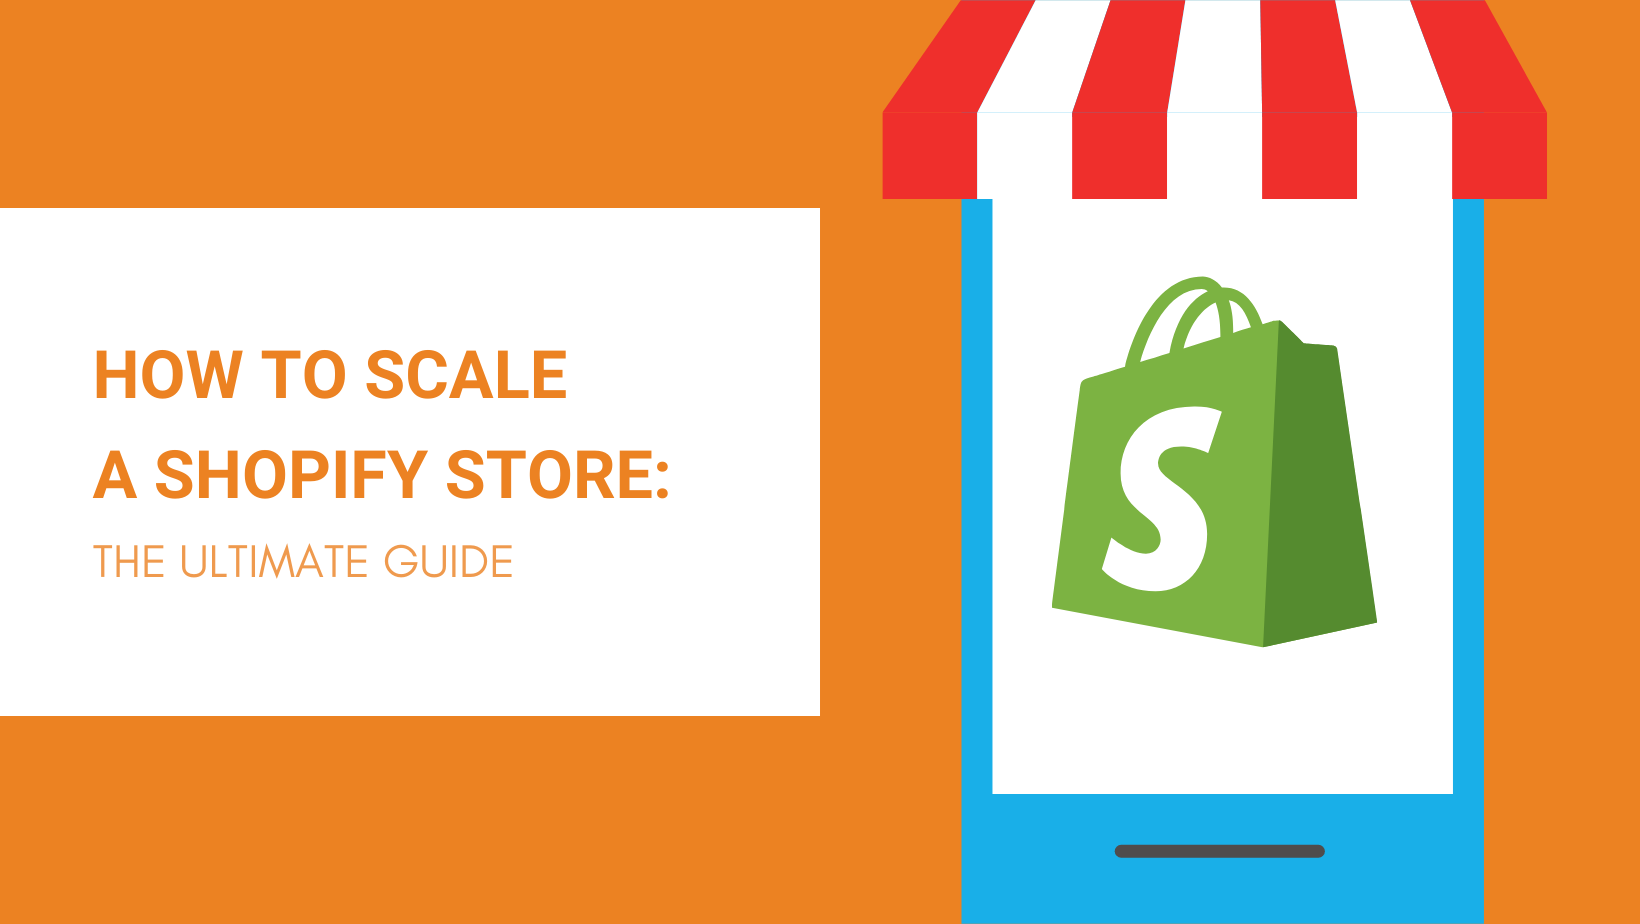 How to Scale a Shopify Store: The Ultimate Guide